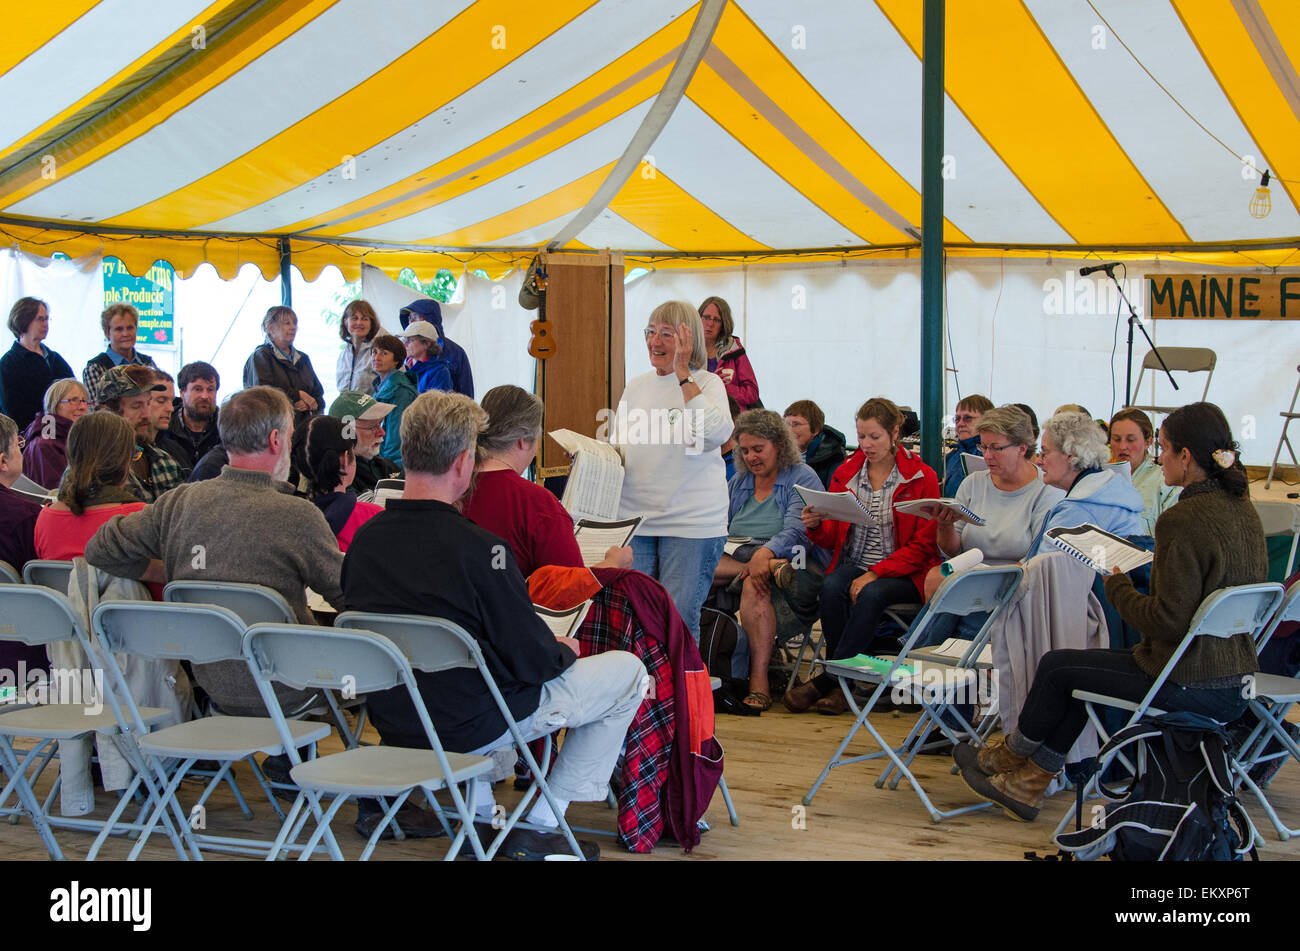 A community sing-a-long at the Common Ground Fair in Unity, Maine. - Stock Image